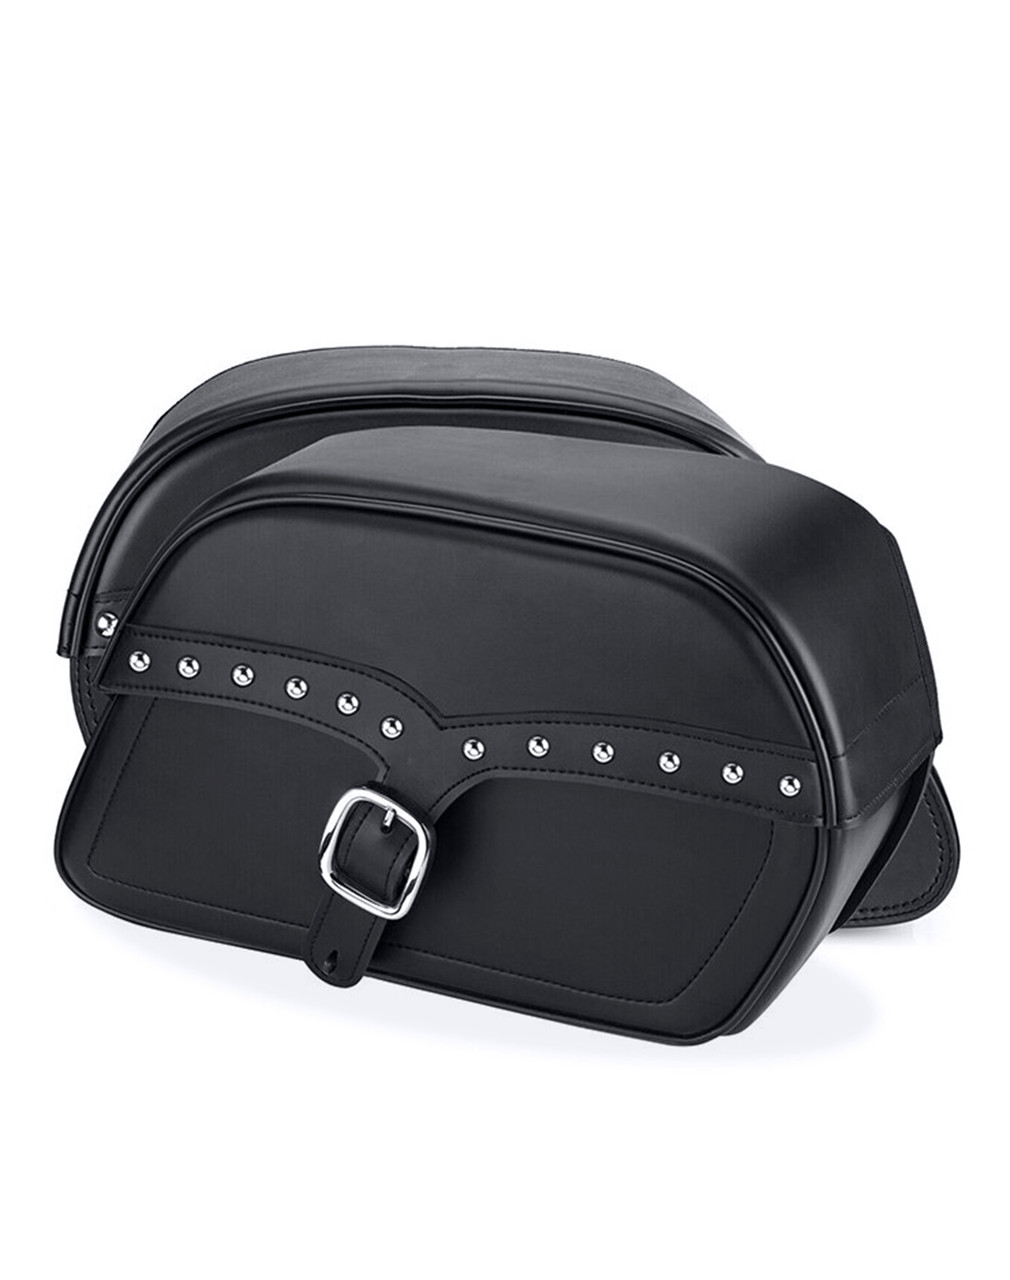 Viking SS Slant Studded Large Motorcycle Saddlebags For Harley Softail Springer FXSTS both bags view